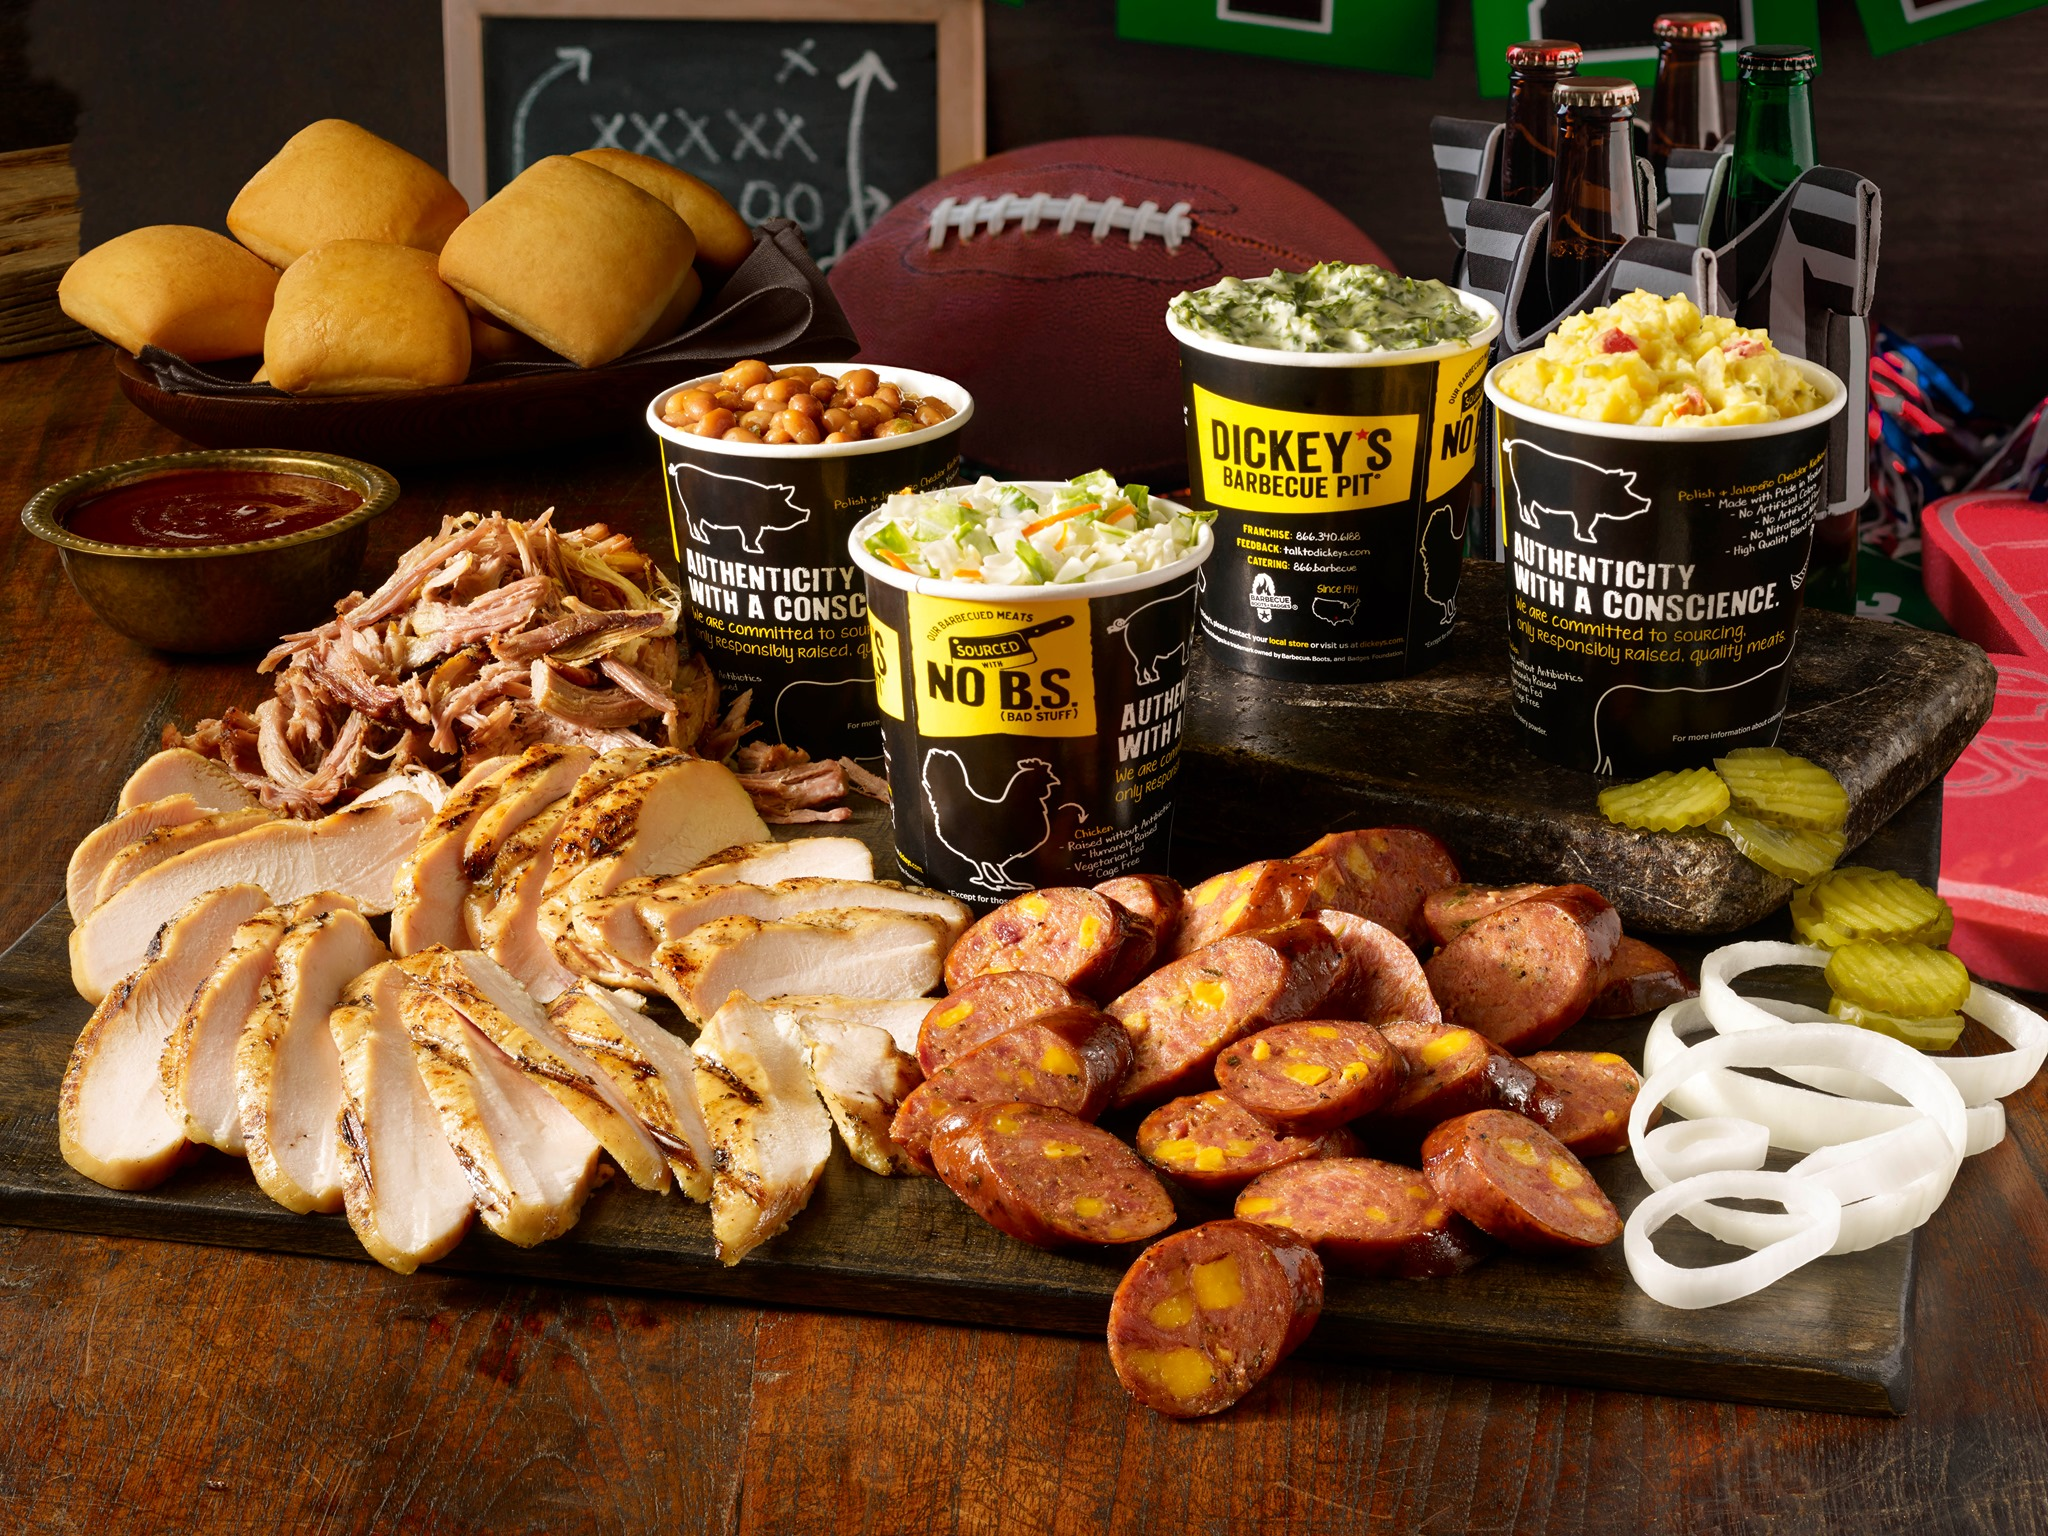 Dickeys Barbecue Pit 5125 Candlewood St, Lakewood